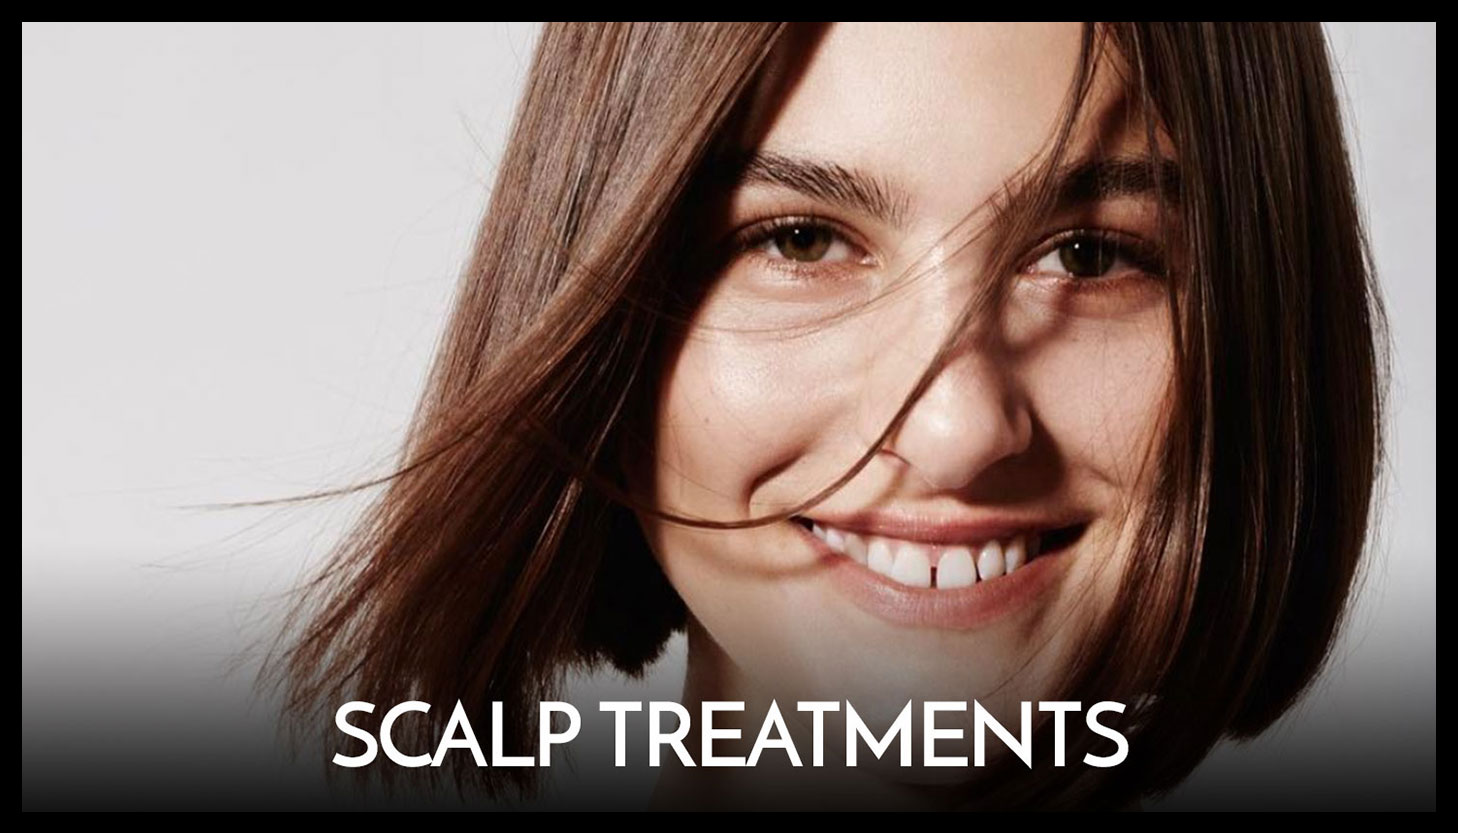 Scalp-treatments-hover